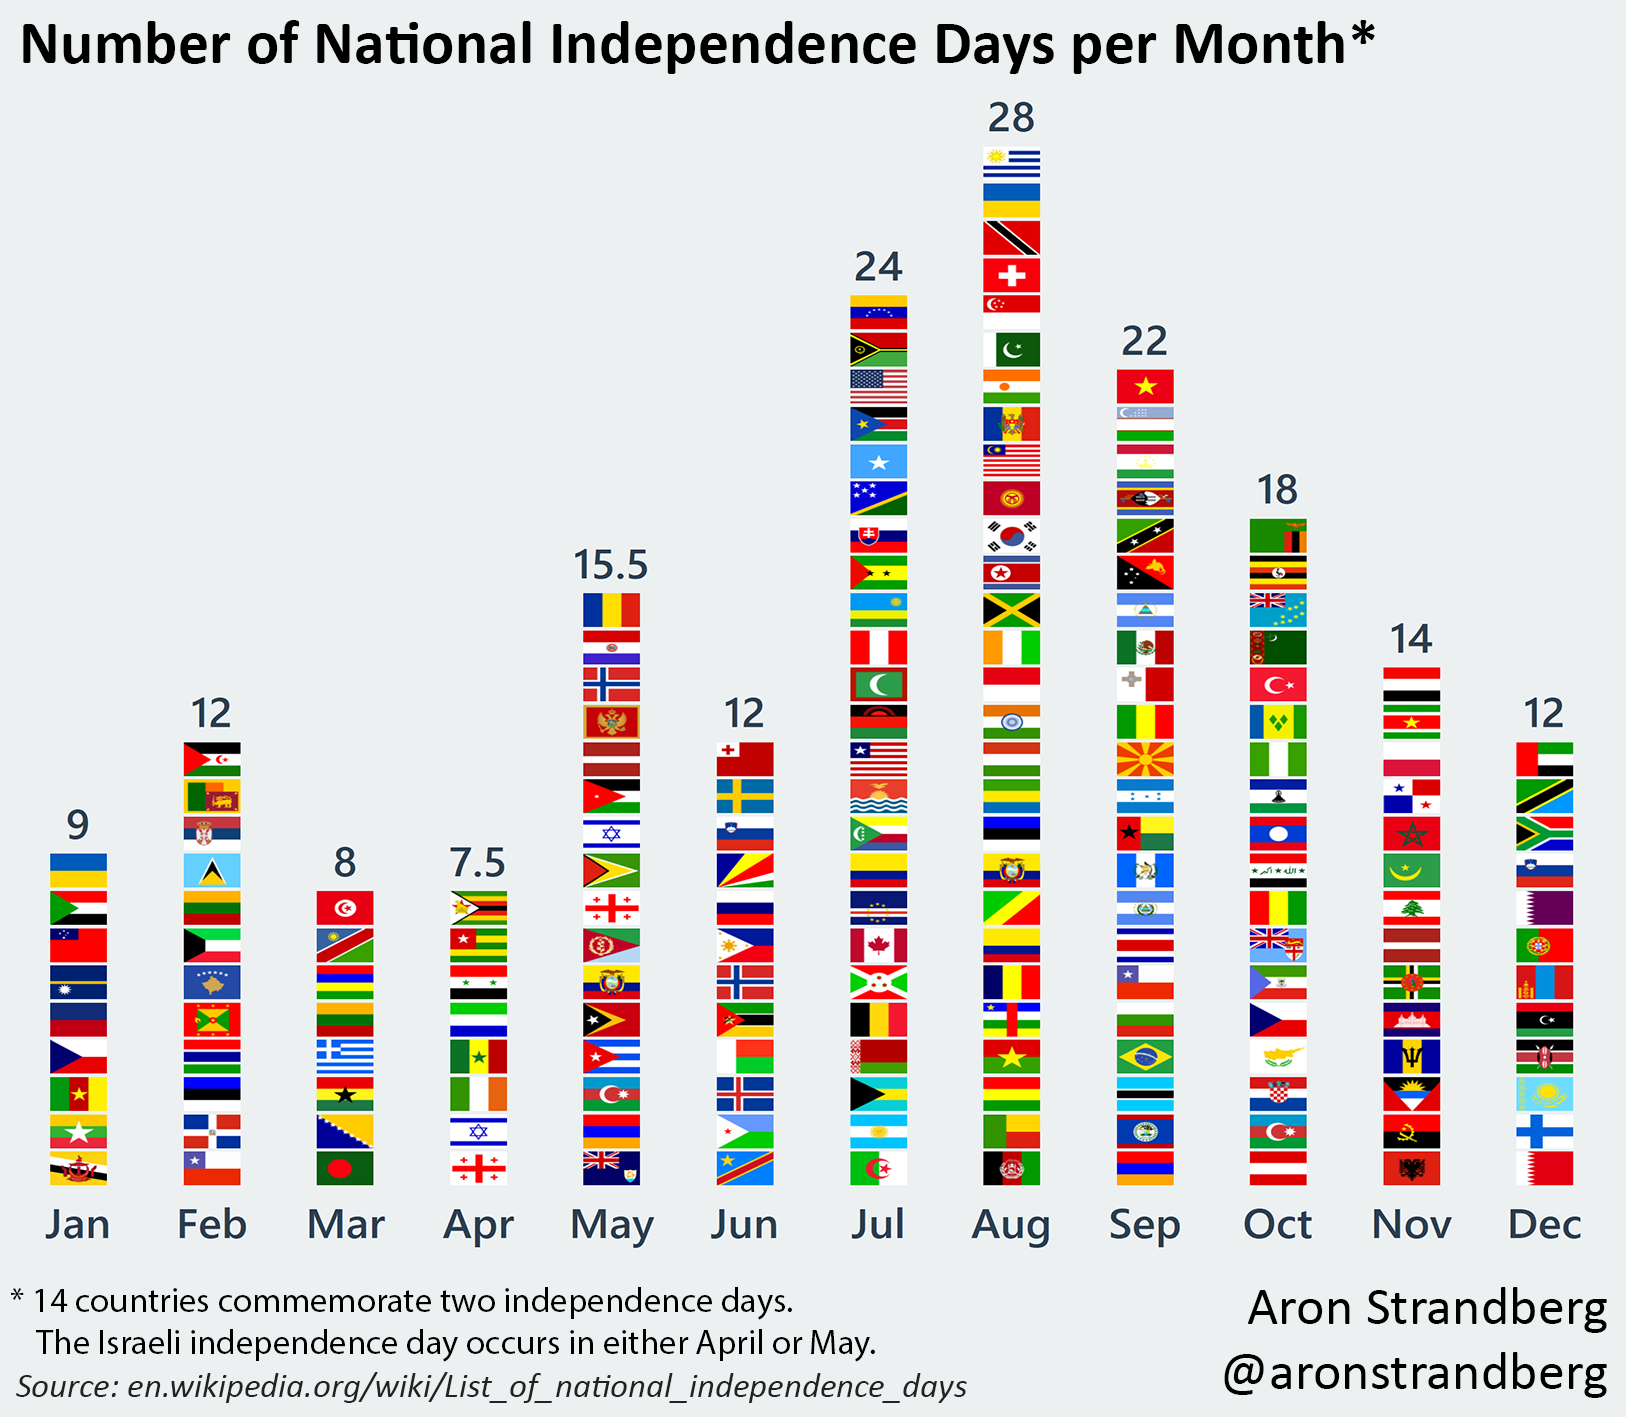 dates of independence of african countries dates of independence of latin american countries dates of independence of south american countries dates of independence of all countries dates of independence of british colonies dates of independence of caribbean countries independence dates of all countries independence dates of african countries independence dates of south american countries independence dates of caribbean countries independence dates of asian countries independence dates of countries independence dates of british colonies independence dates of latin american countries independence dates of spanish speaking countries